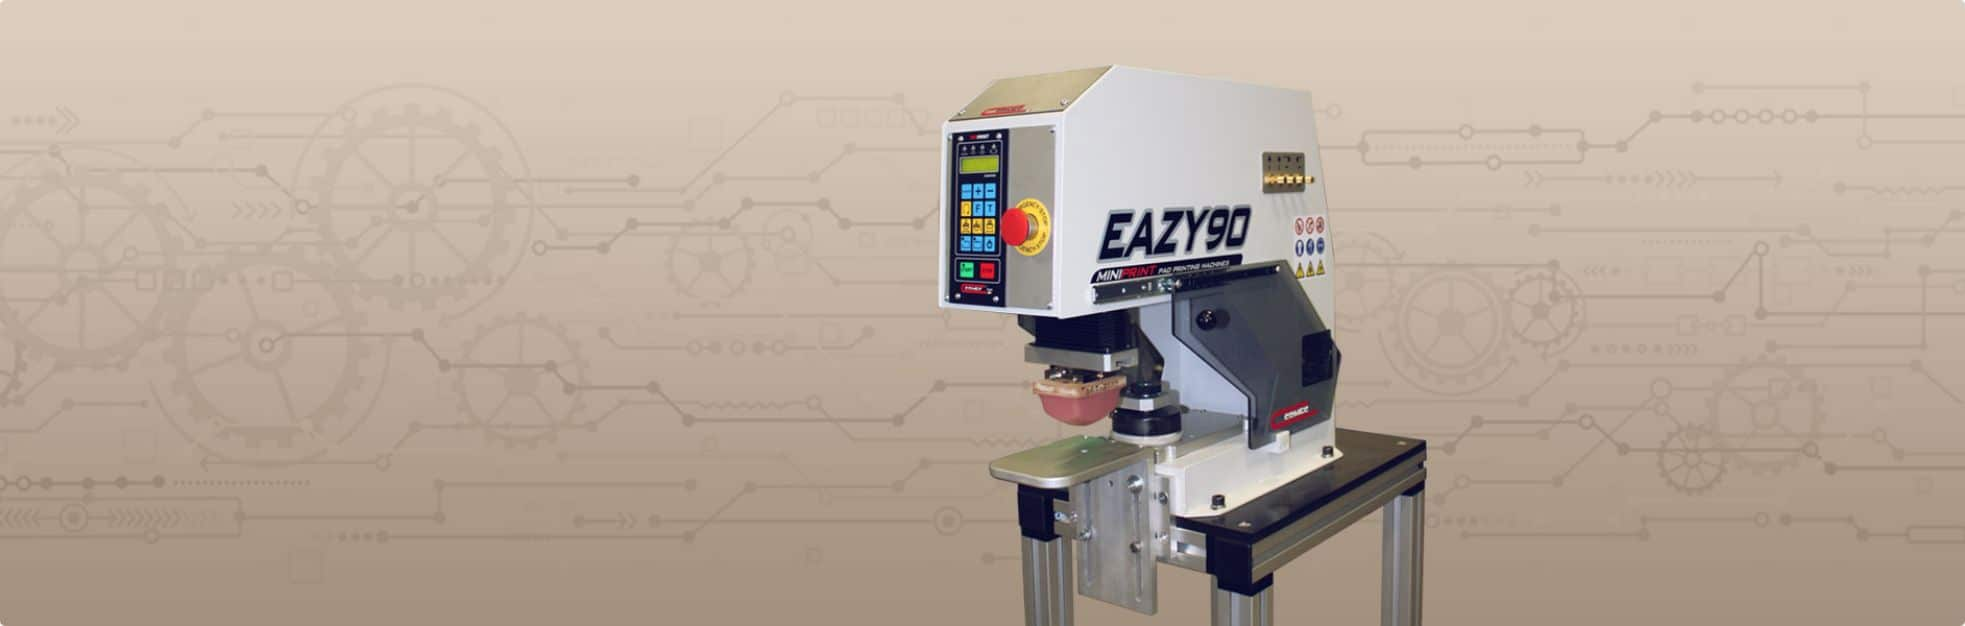 EAZY 90 Pad Printing Machine